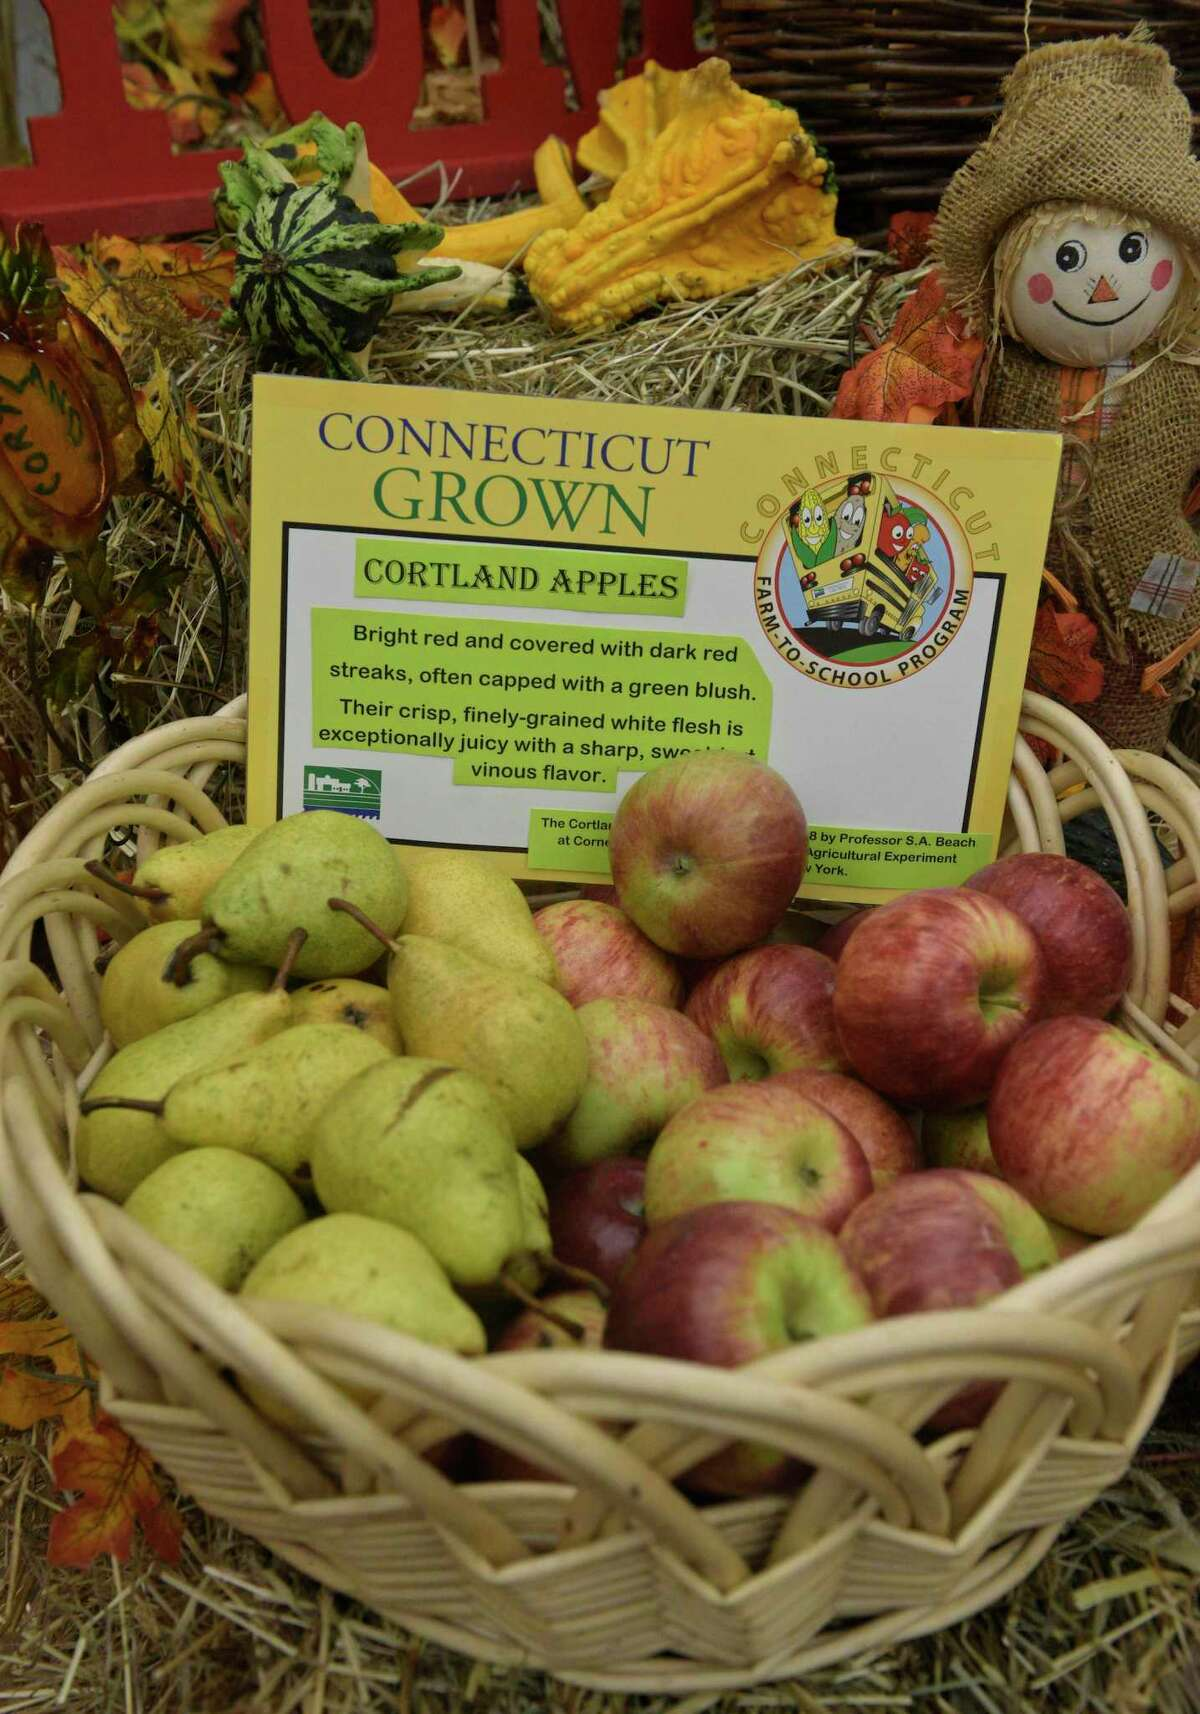 Connecticut-grown apples on display in New Milford.